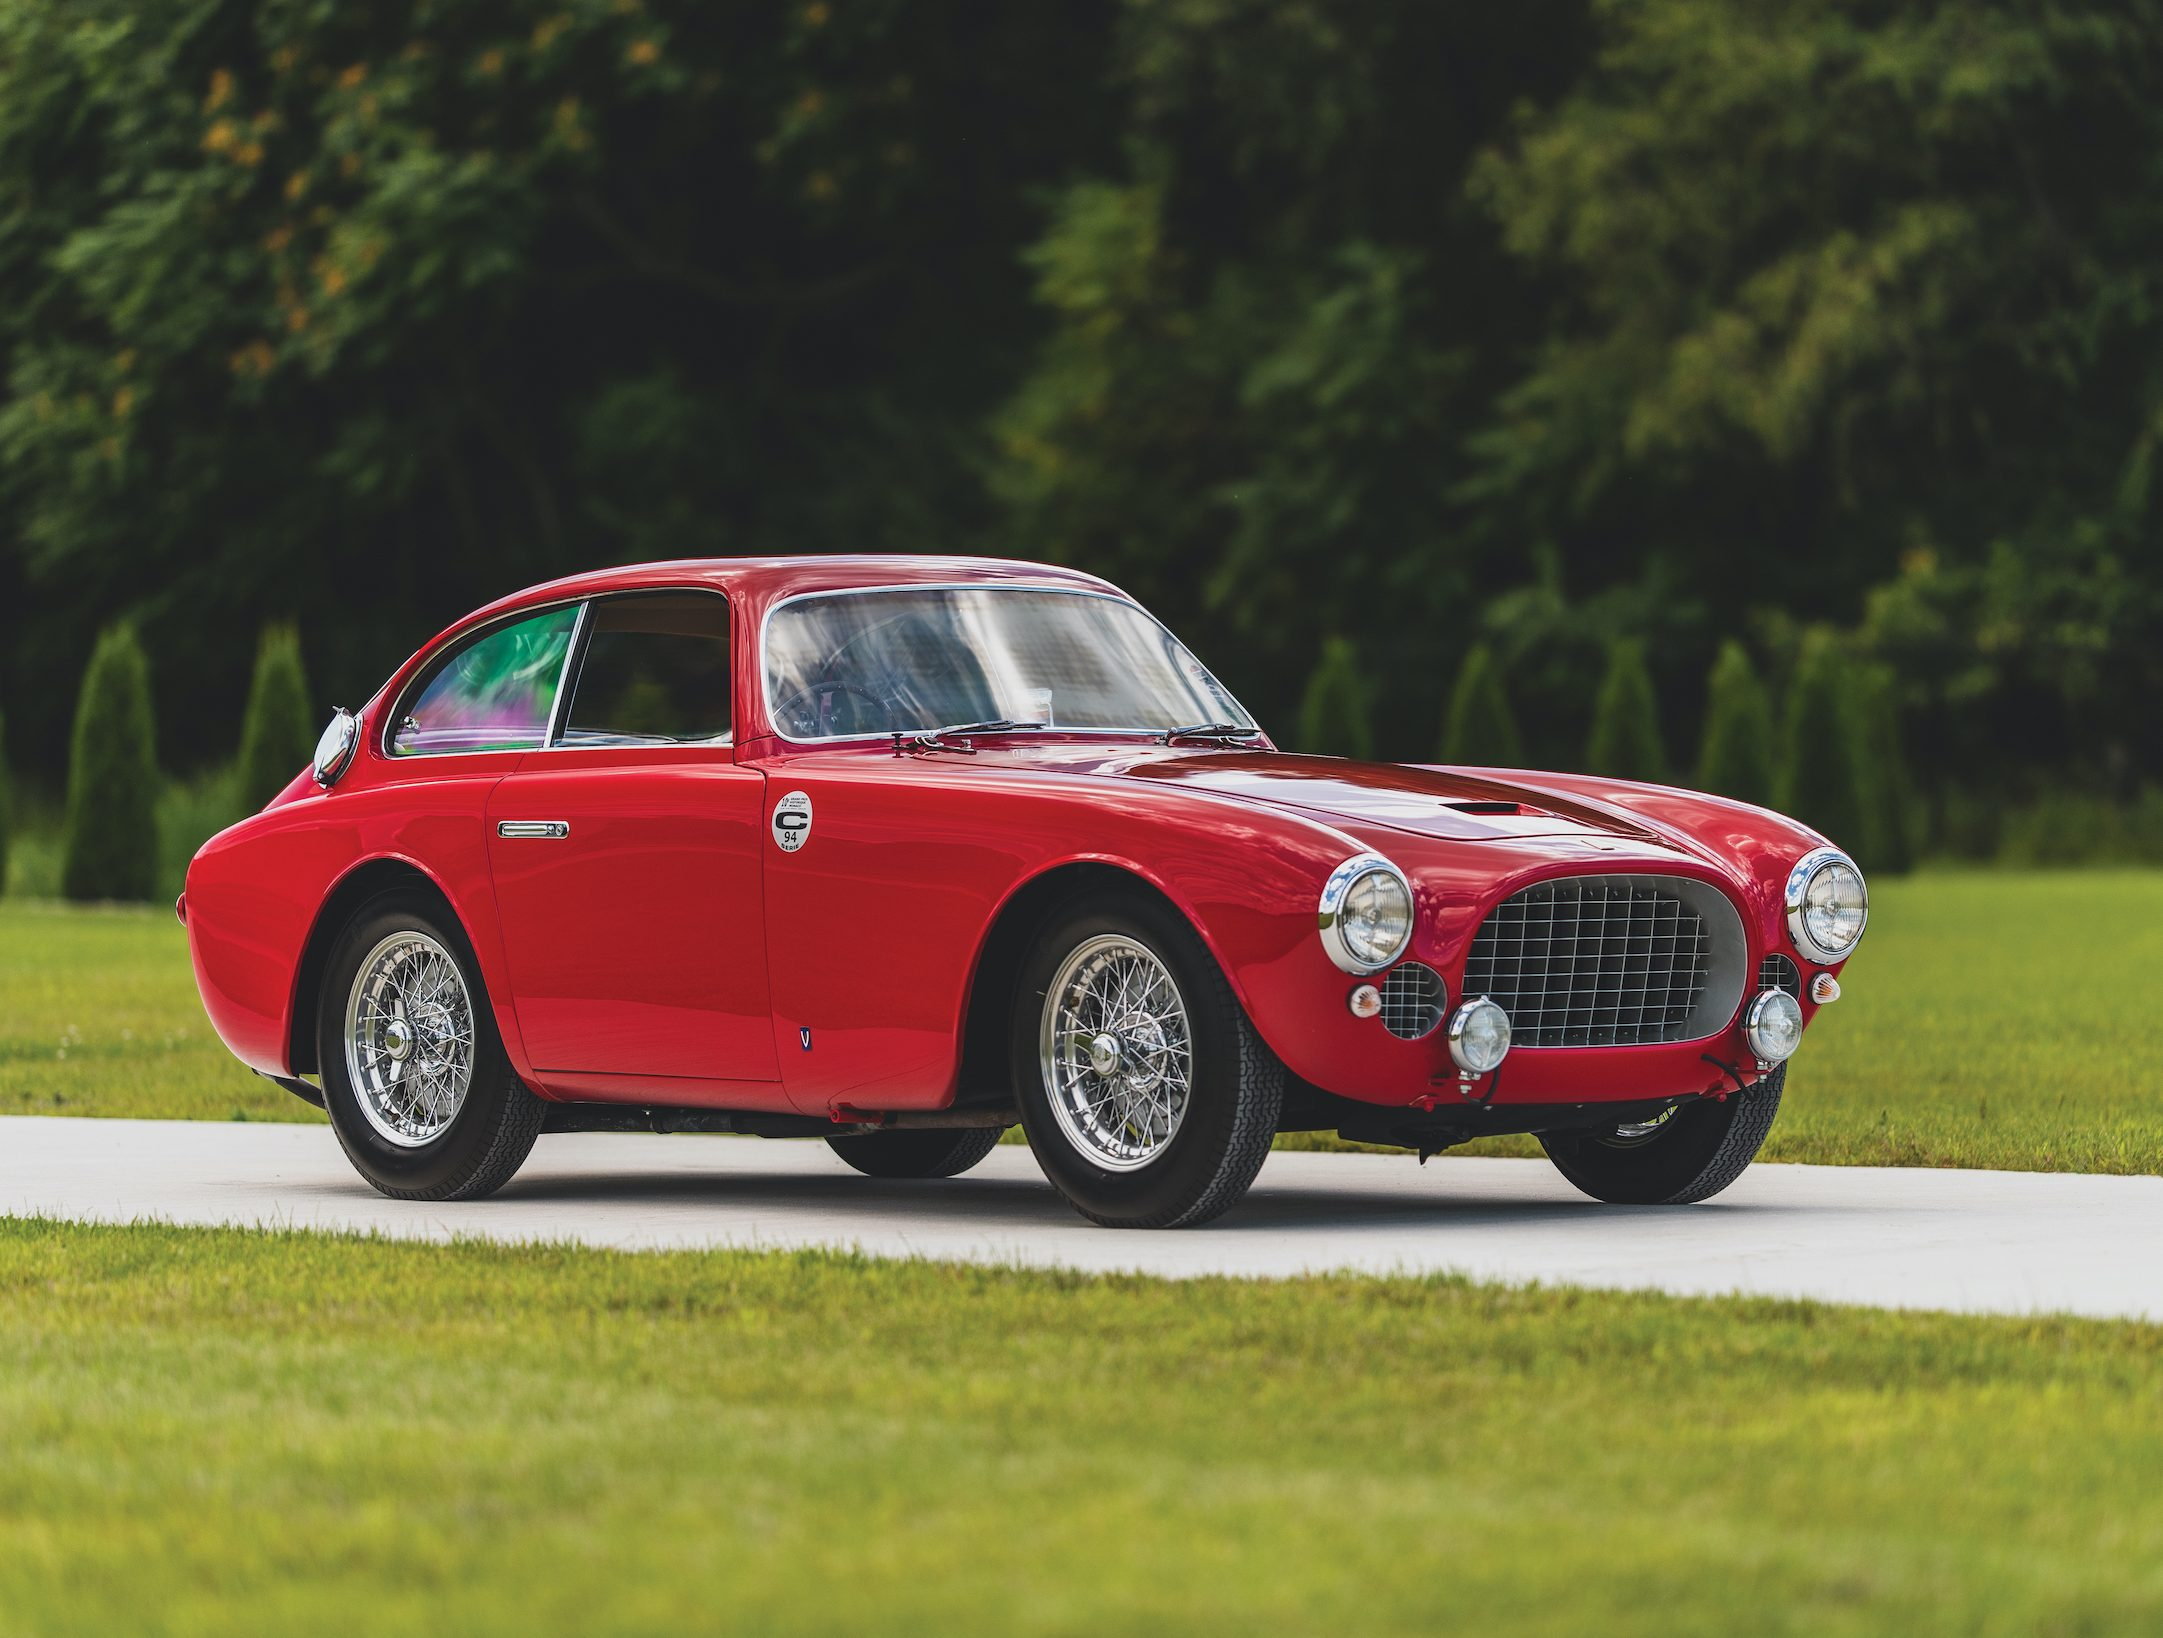 Sold! The 8 most expensive cars from the Elkhart Collection